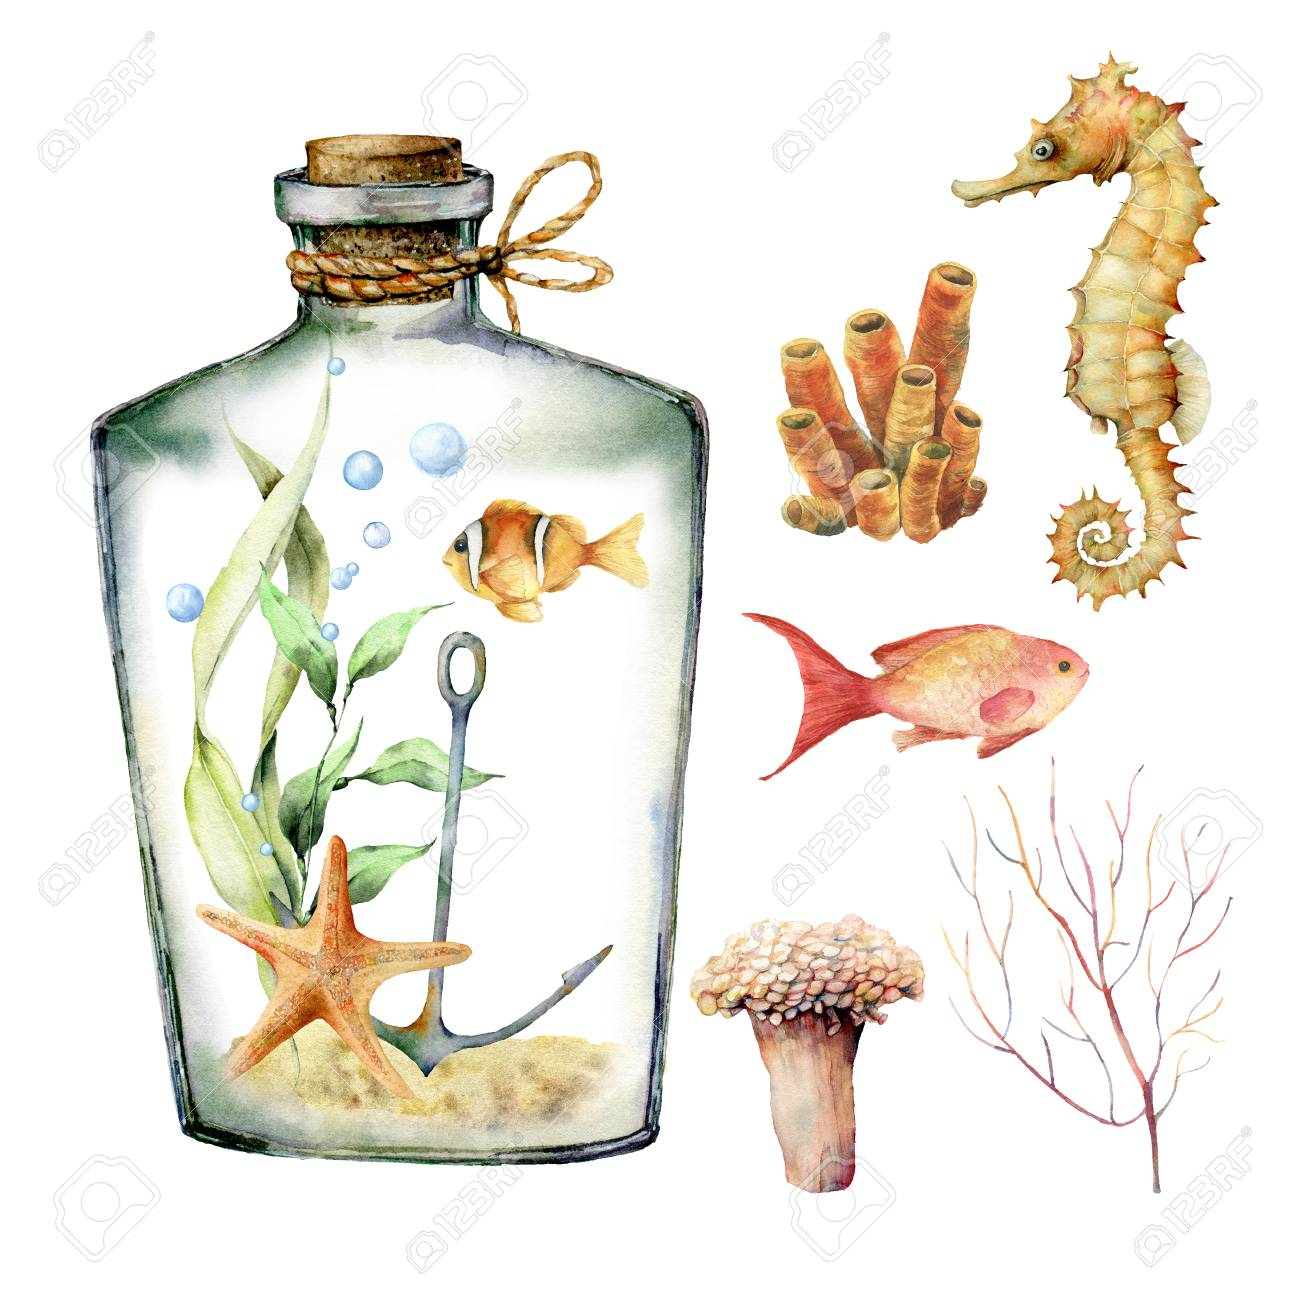 Watercolor Aquarium With Coral Animals Plants And Fish Hand Stock Photo Picture And Royalty Free Image Image 125236581